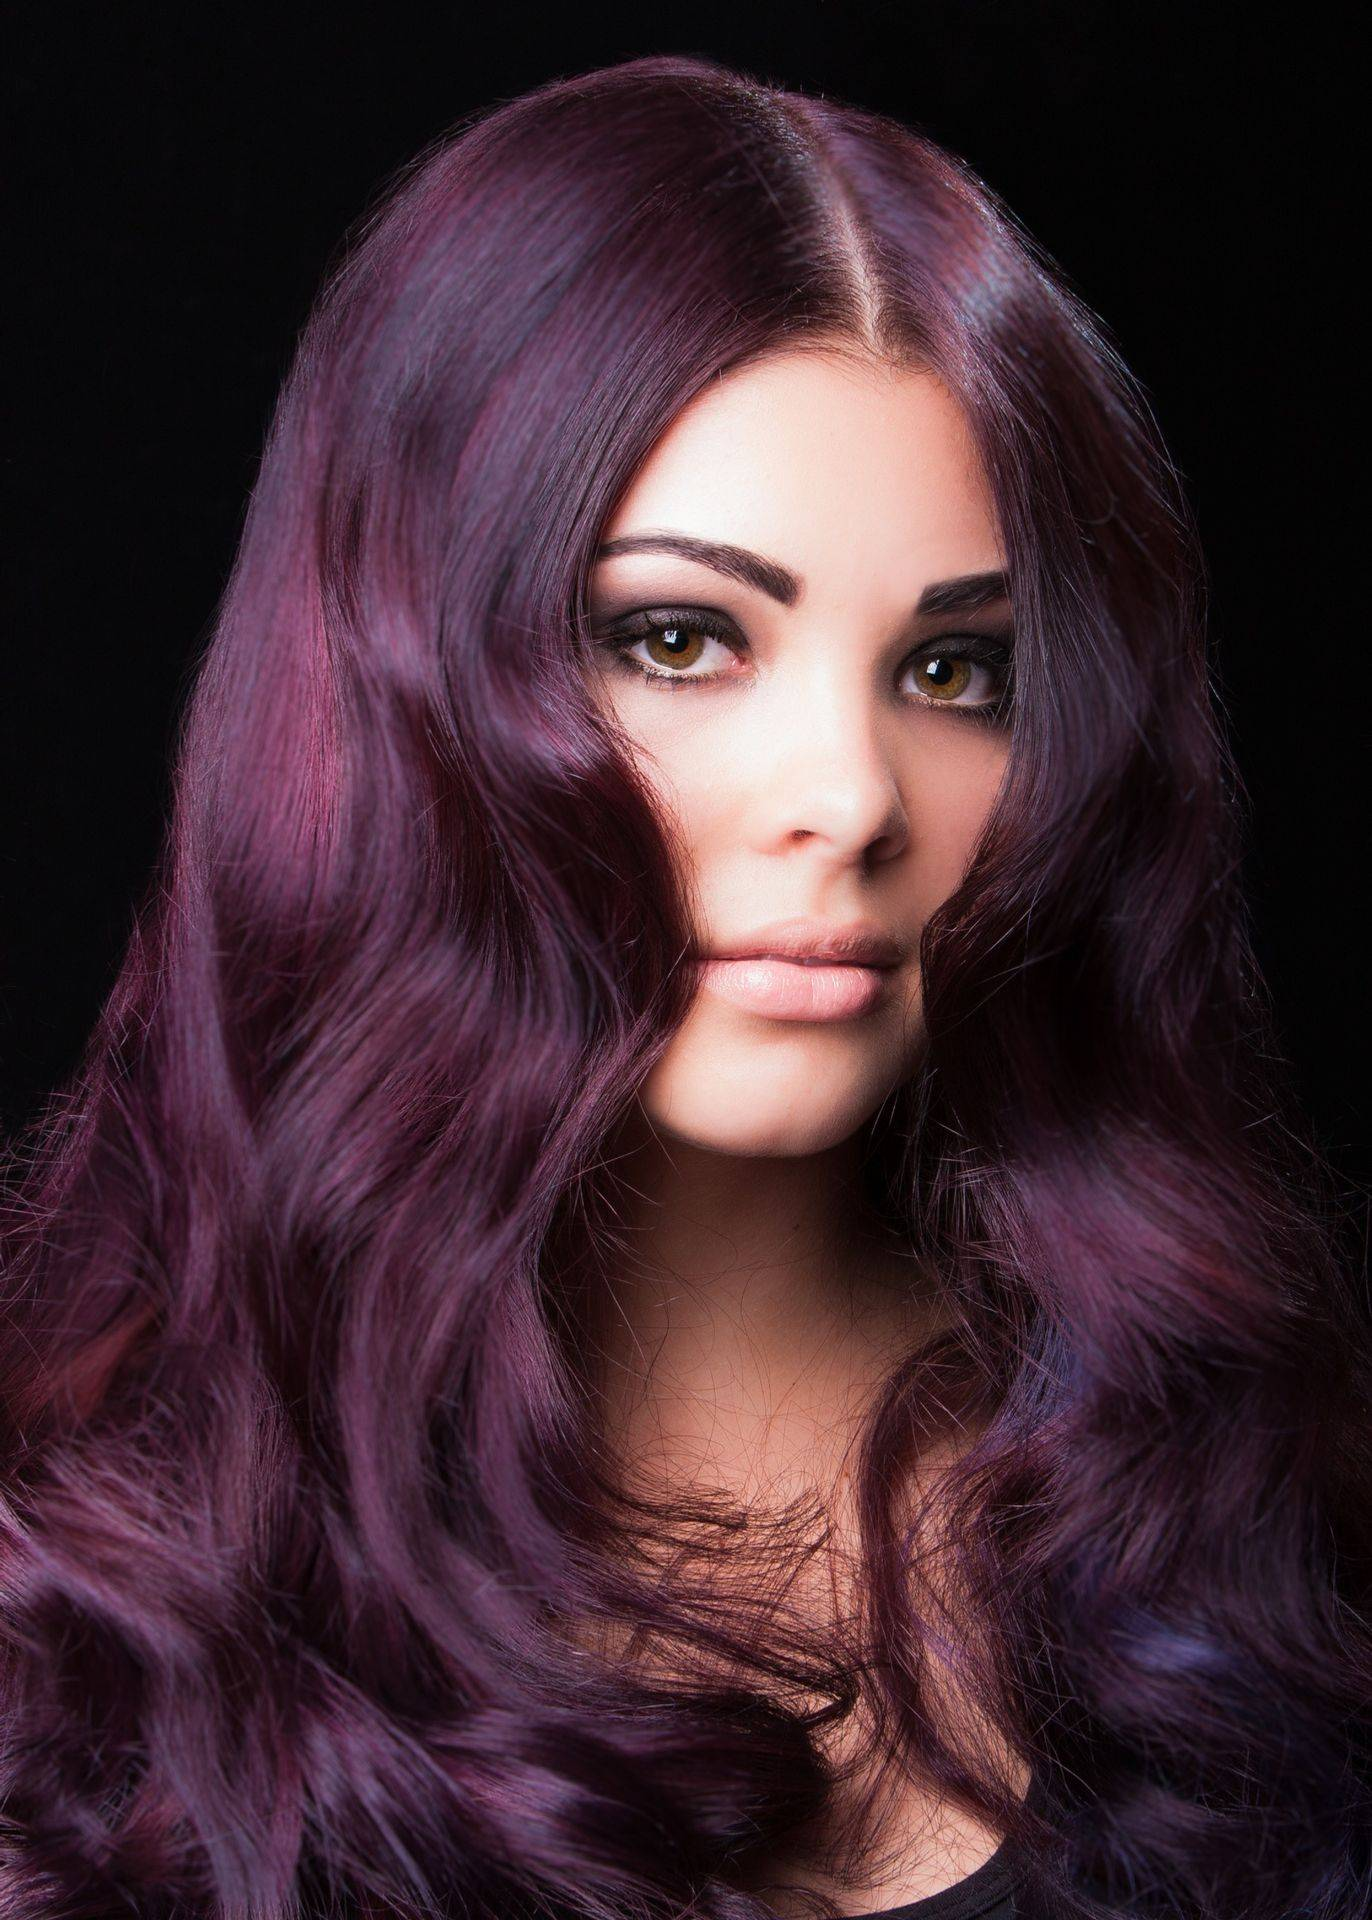 Local models used in all our marketing and images, Heidi in rich purple.